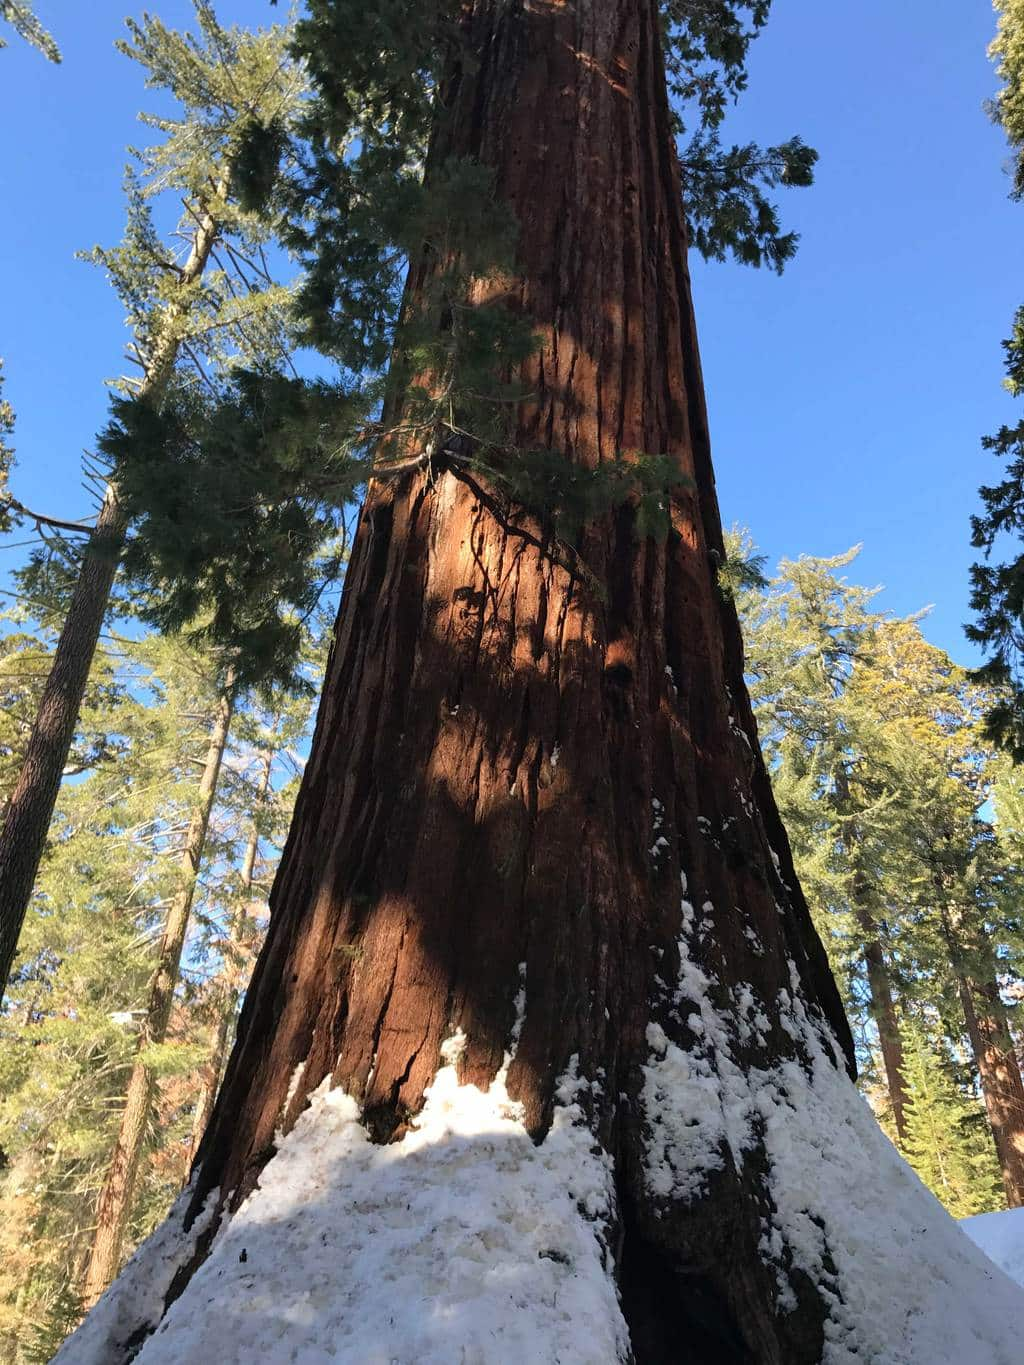 kings-canyon-giant-sequoia-general-sherman-tree-11